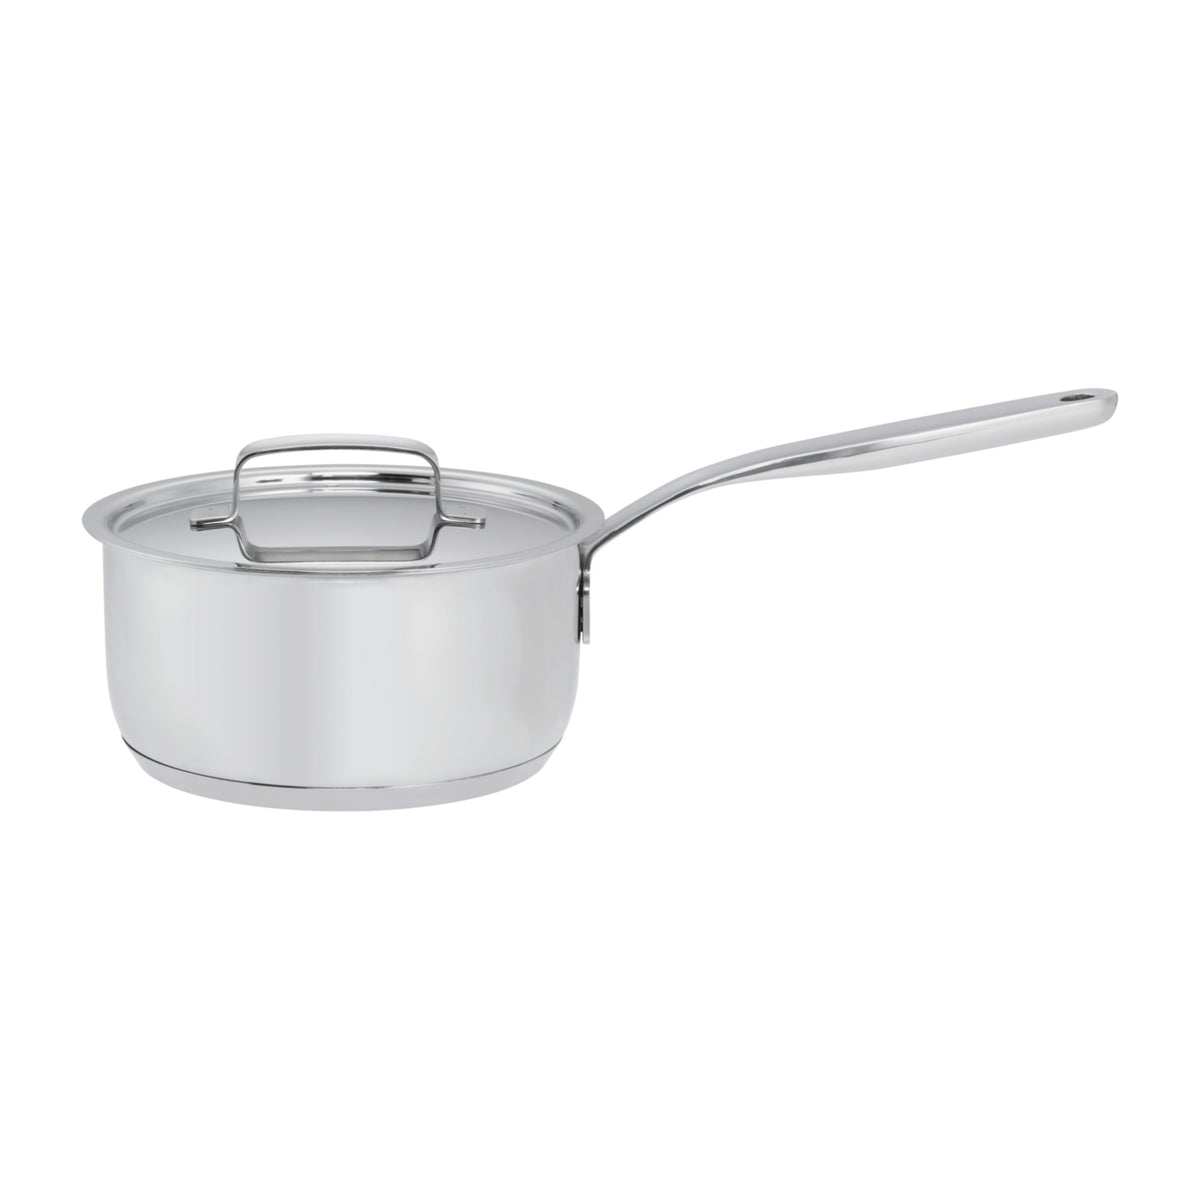 All steel pottur skaft m/loki 1,5ltr